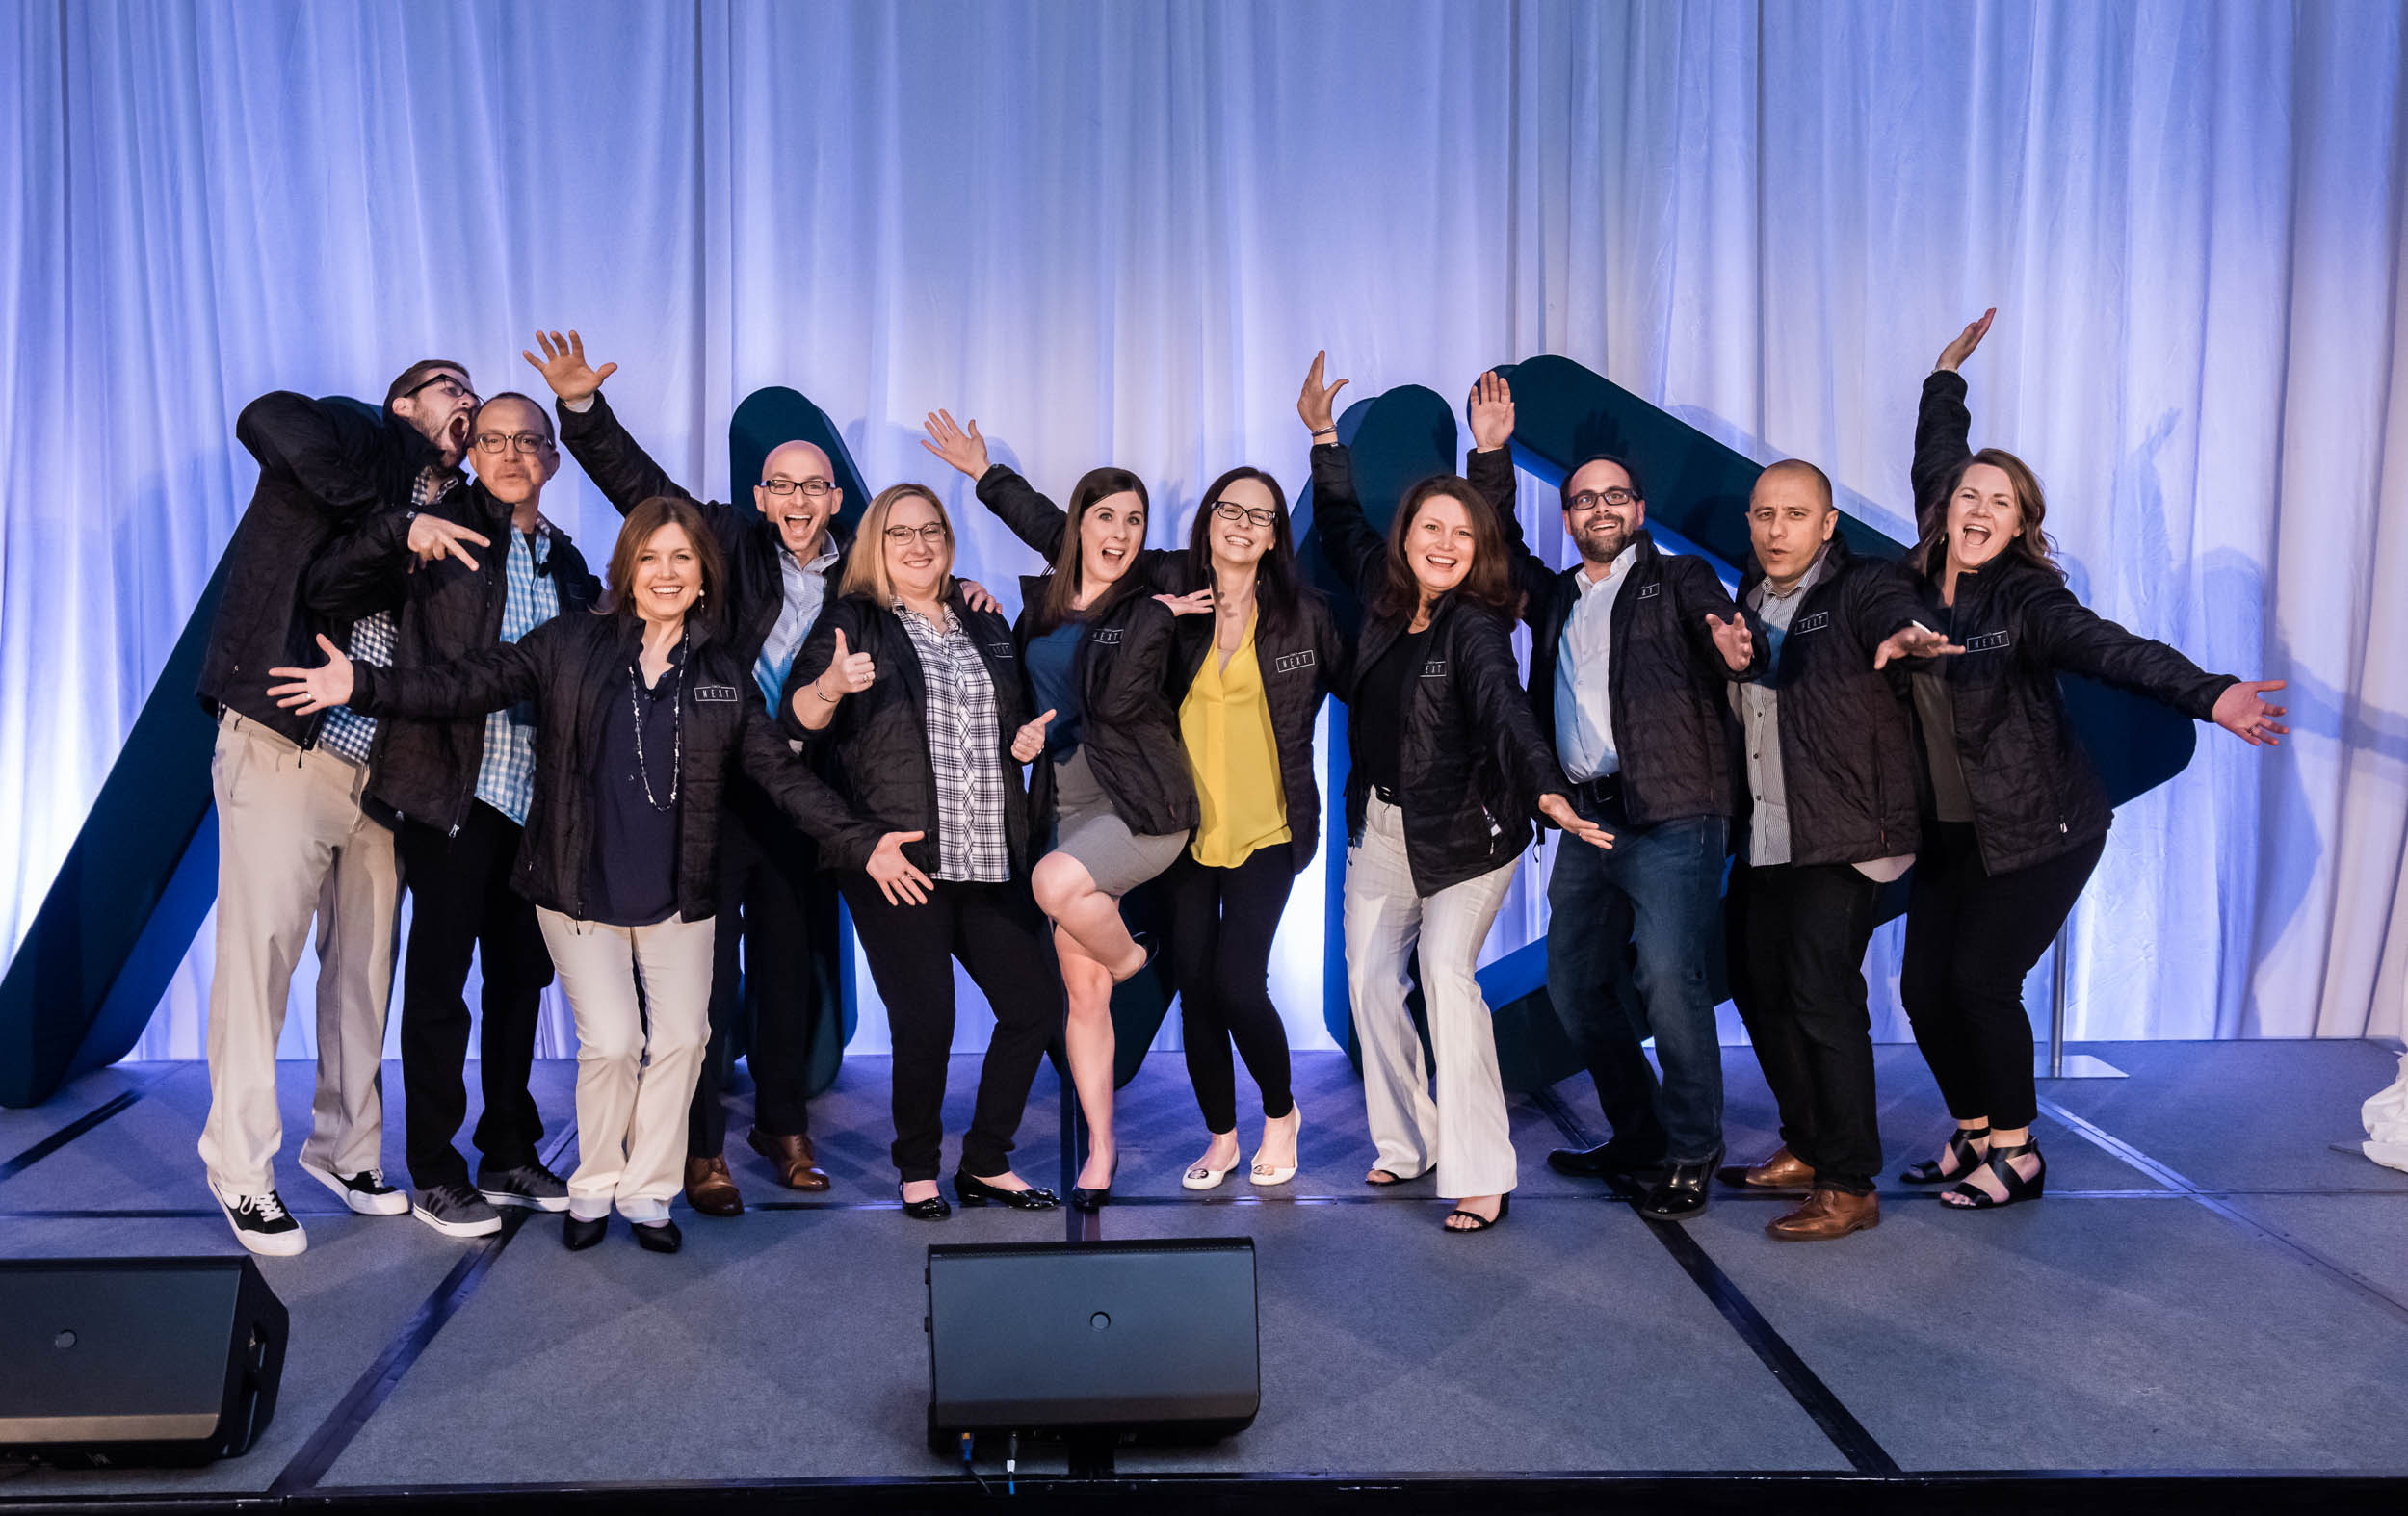 LEADERSHIP SUMMIT - AMA's 2019 Leadership Summit was a high-energy affair. We were there to capture the fun.